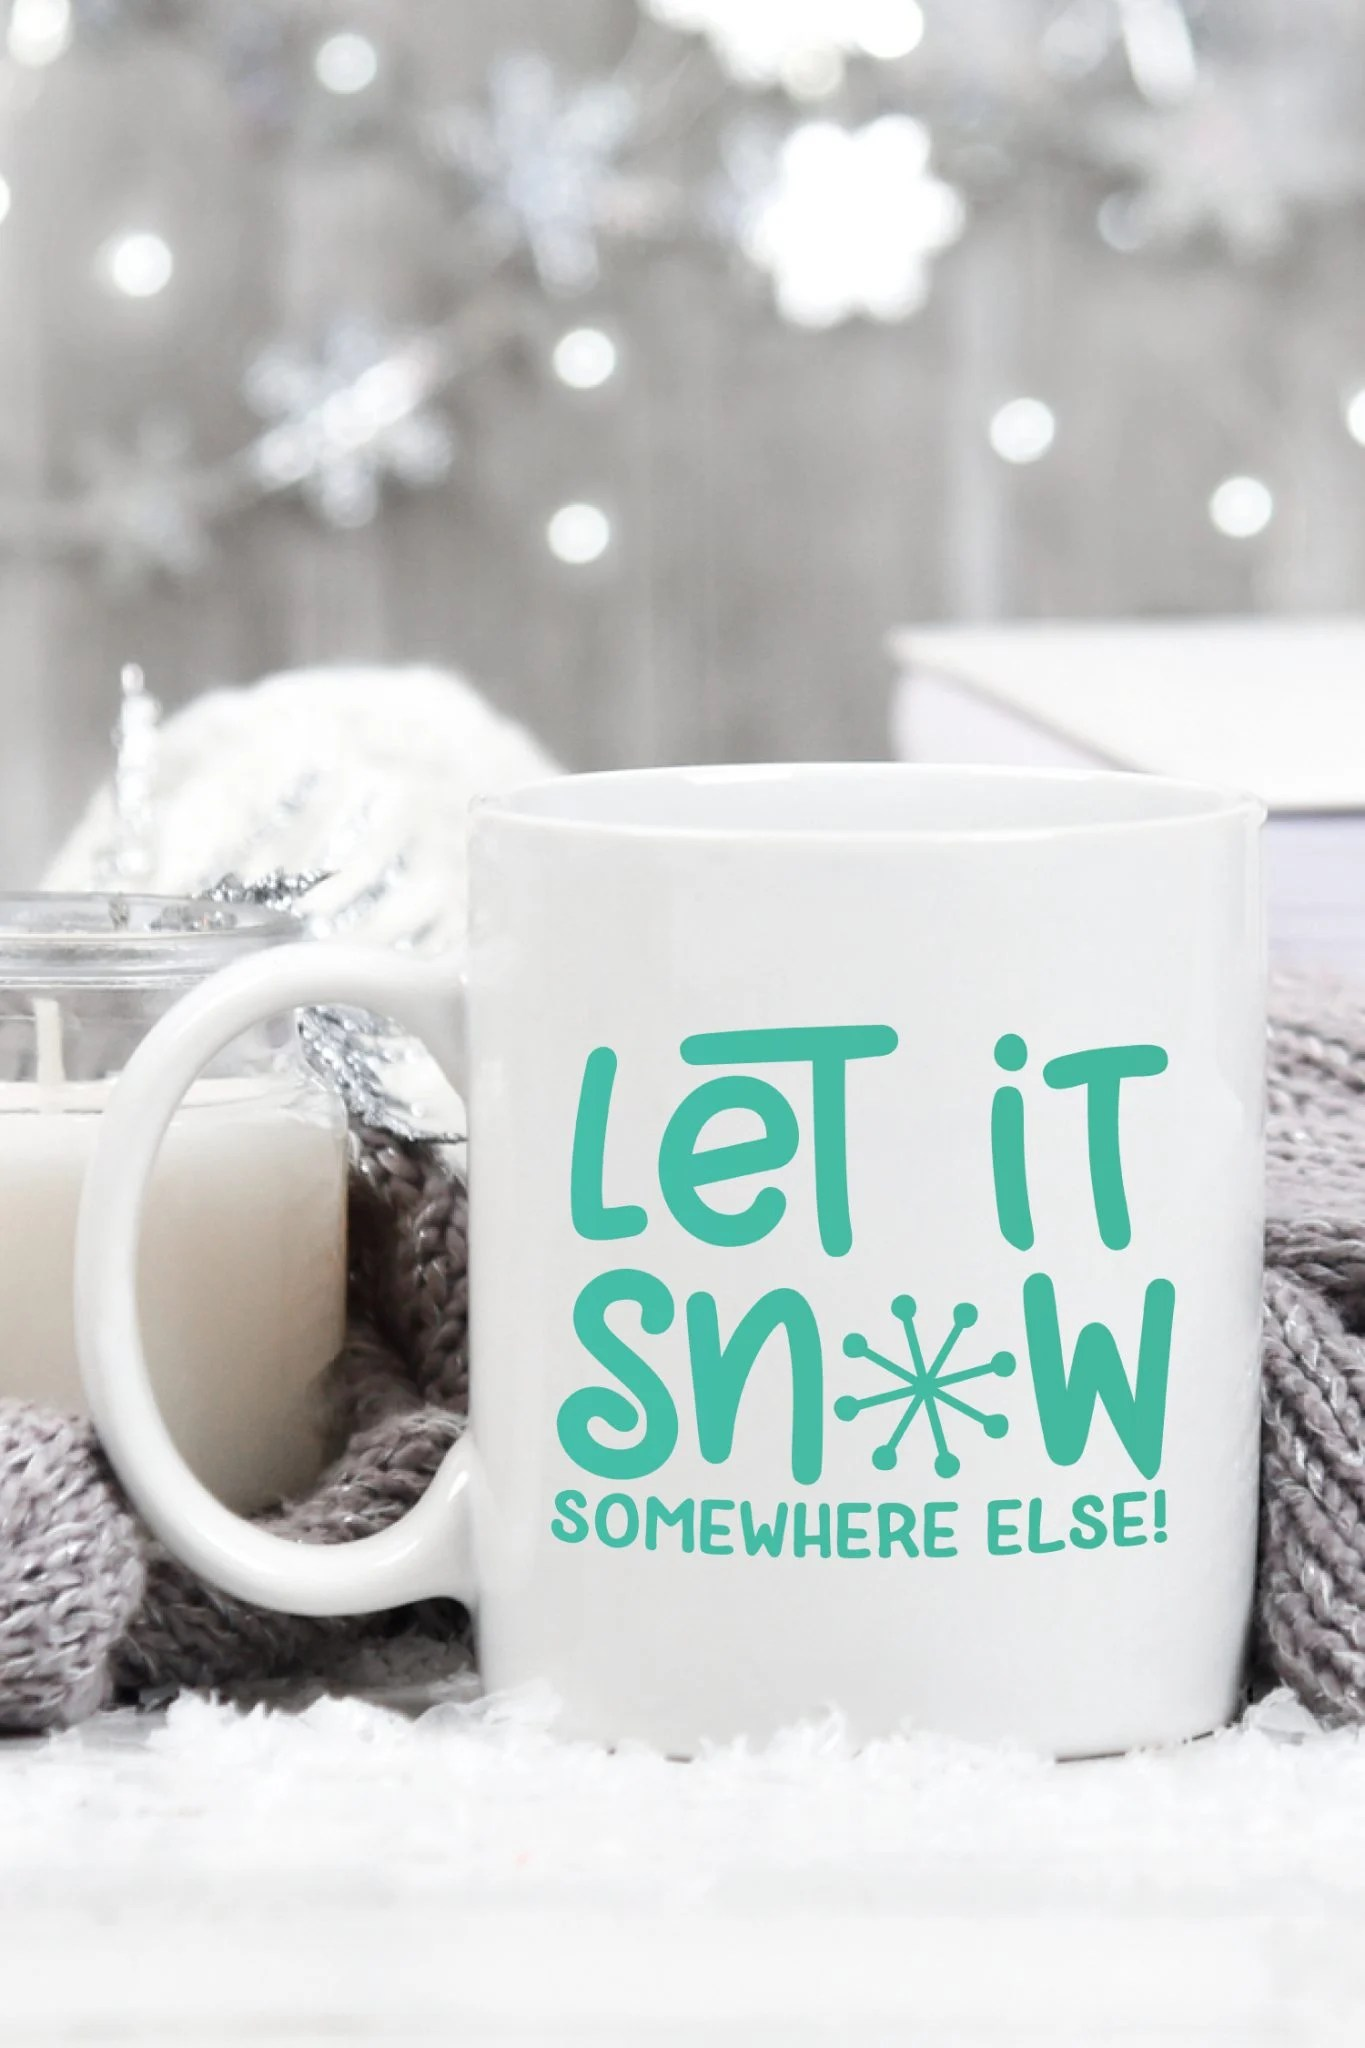 Baby, it's cold outside! Stay inside where it's warm and create cozy pajamas, snuggly blankets and steaming coffee mugs with the four cut files in this Winter SVG Bundle.